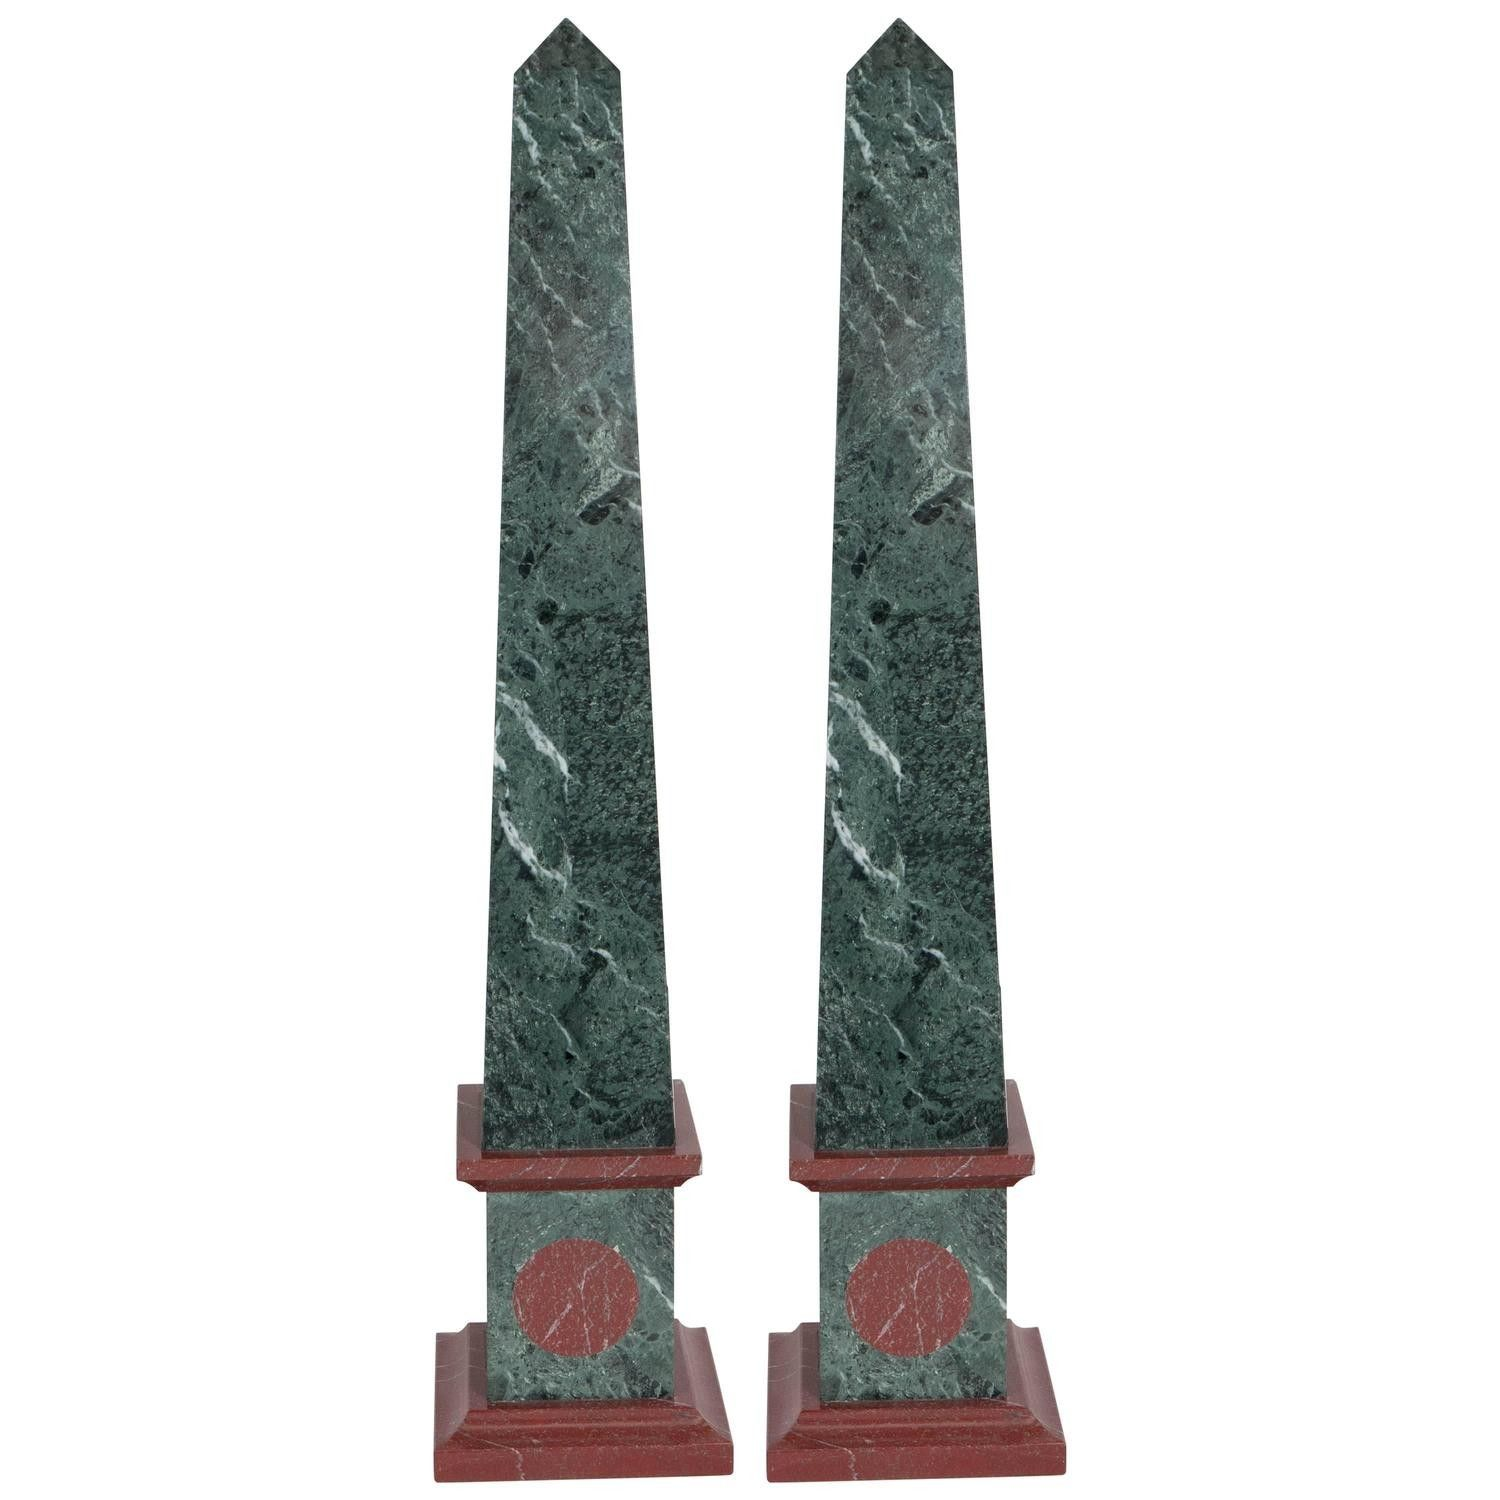 A Pair Of Grand Tour Architectural Obelisks In Green And Red Marble Produced During The Mid 20th Century In Good Vintage Con In 2020 With Images Obelisk Grand Tour Green Marble